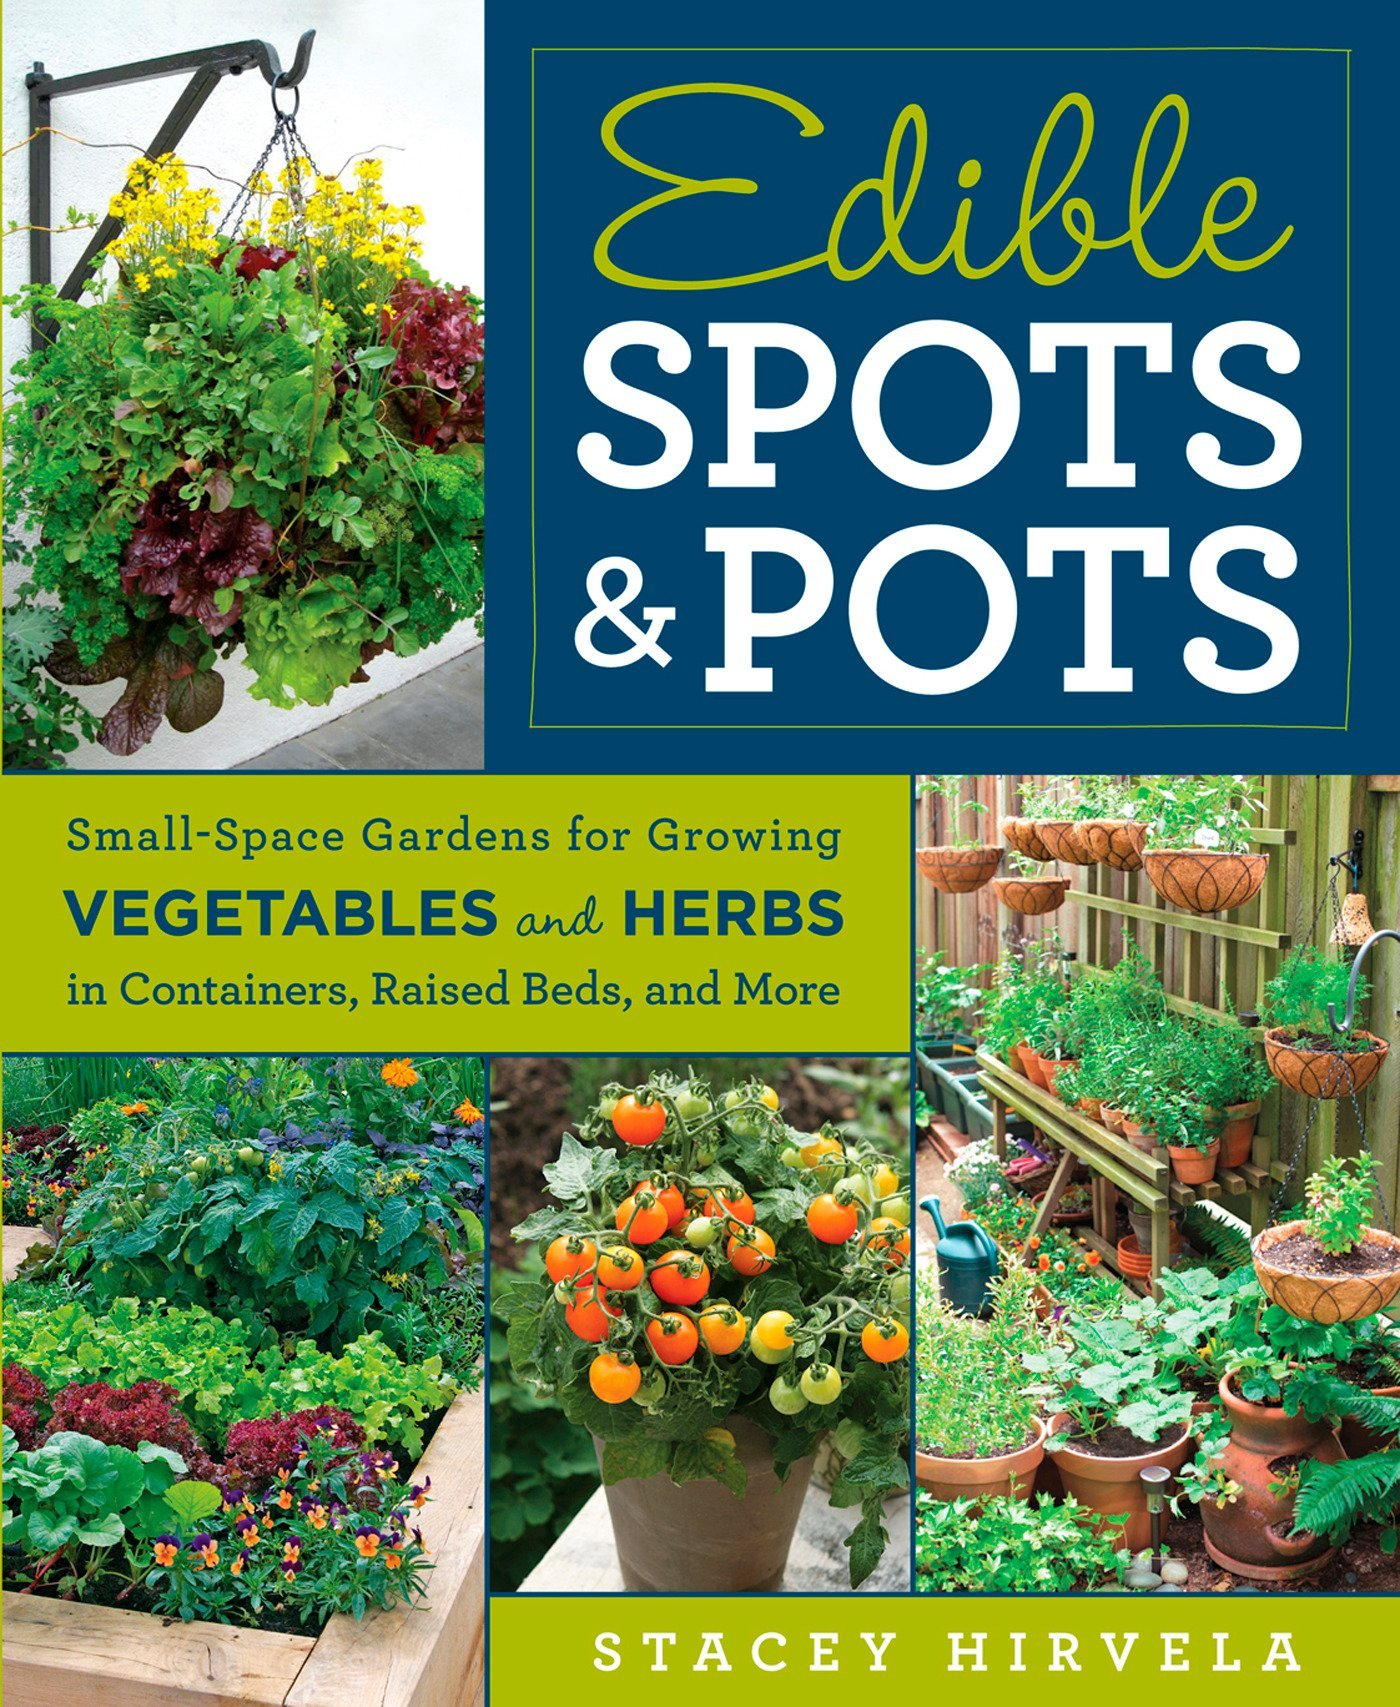 Edible Spots and Pots: Small-Space Gardens for Growing ... on raised bed garden materials, gardening containers, large plastic garden containers, plastic raised garden containers, growing vegetables in containers, raised garden bed construction, raised garden kits, plans for raised garden containers, companion planting vegetables in containers, vegetable plants in containers, raised garden bed table, raised flower bed kits, raised planter beds, raised deck garden box, raised garden beds from pallets, raised garden bed corners, raised bed garden layouts, trailing plants for containers, recycled garden containers, growing zucchini in containers,